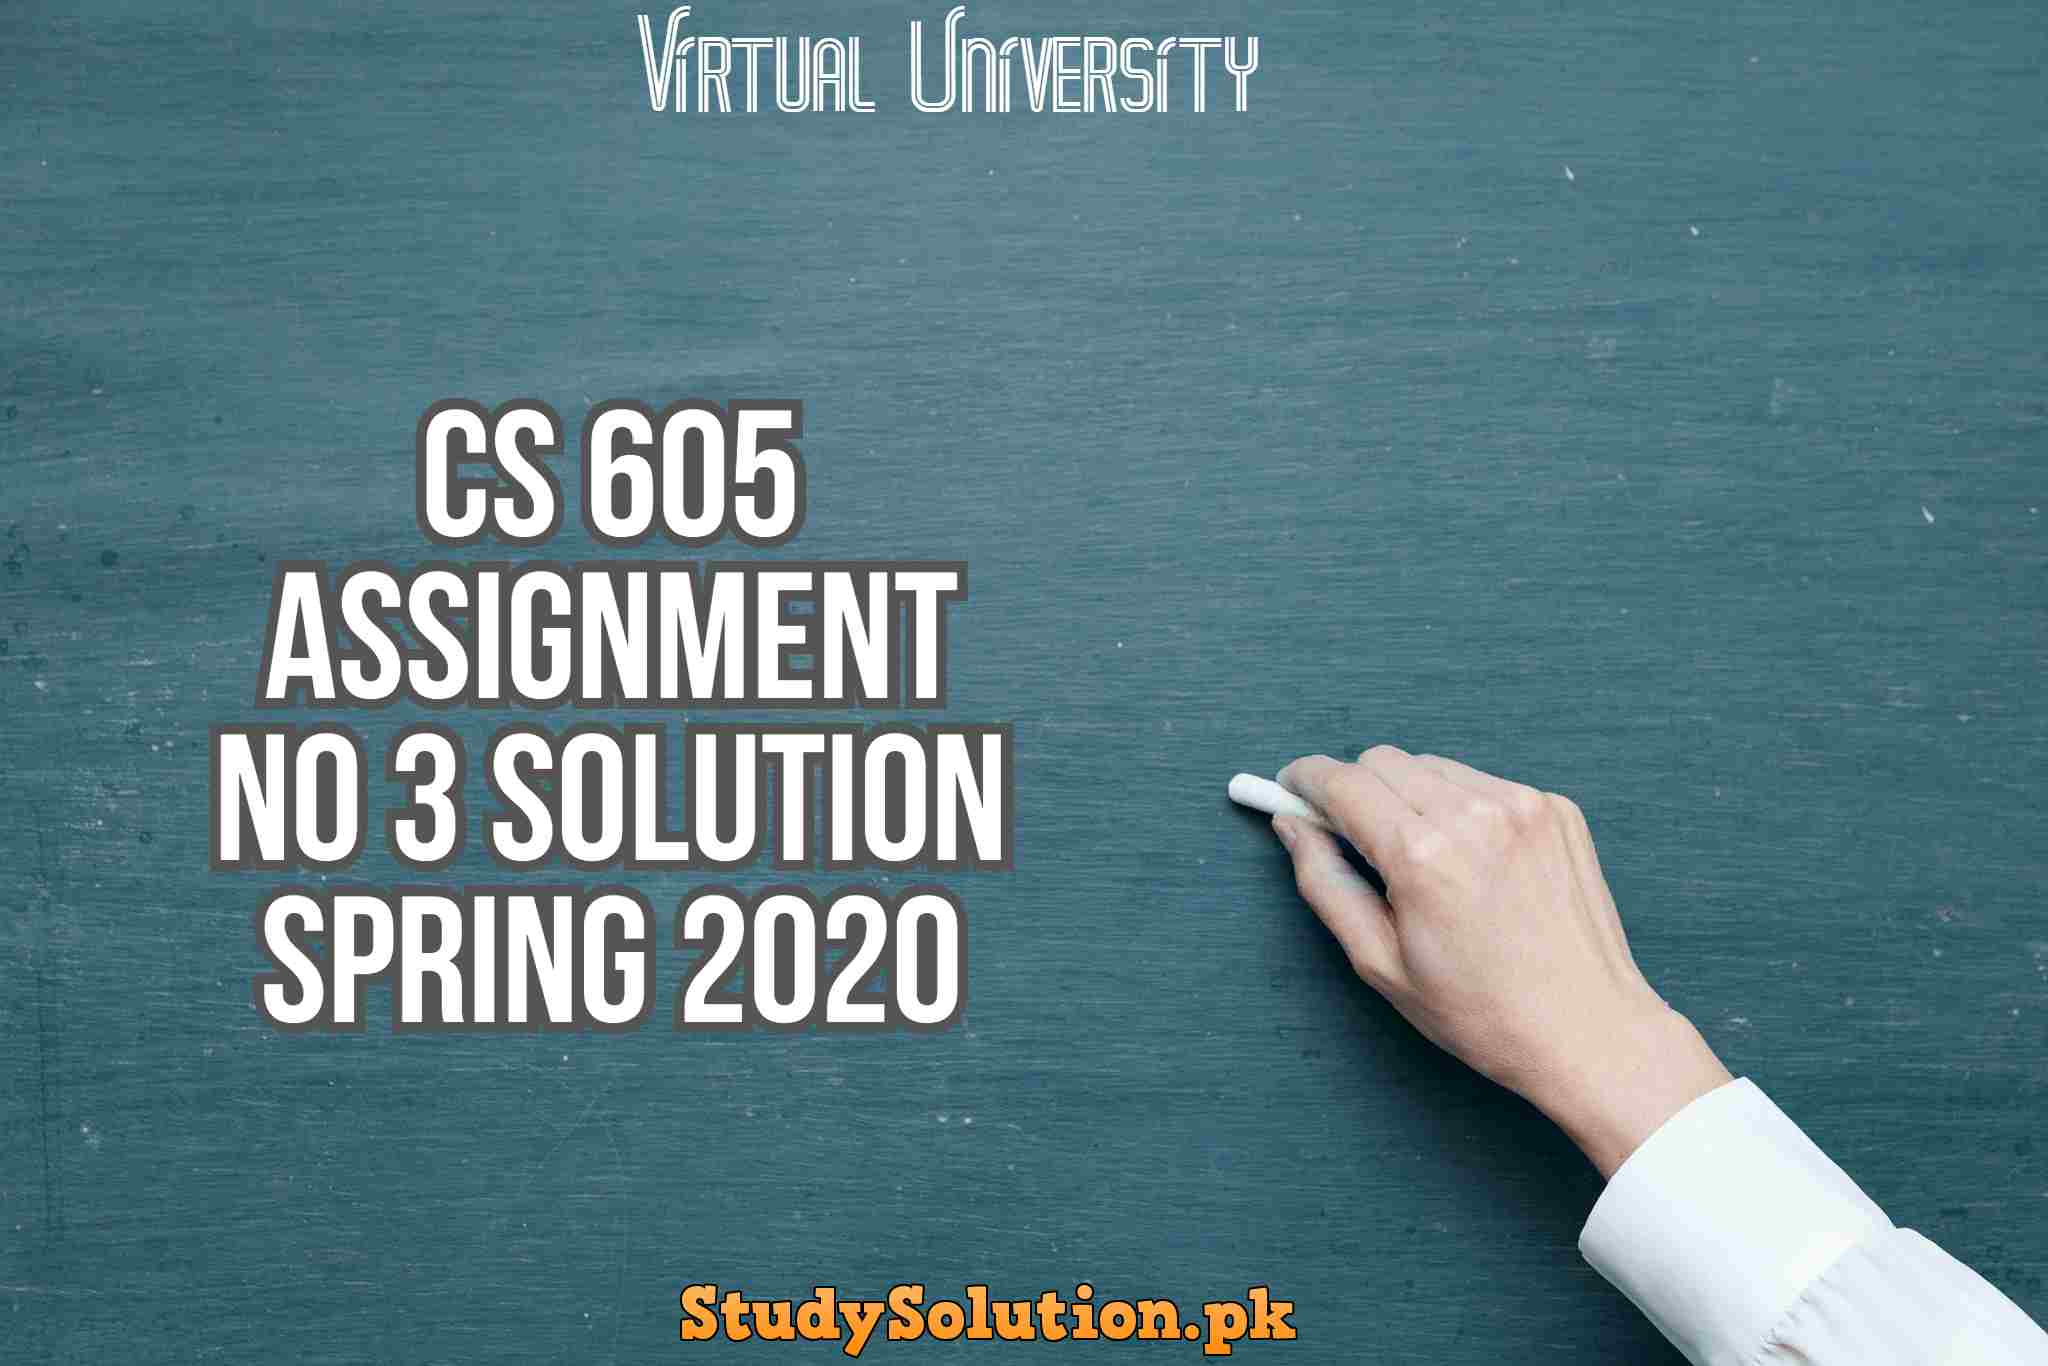 CS 605 Assignment No 3 Solution Spring 2020